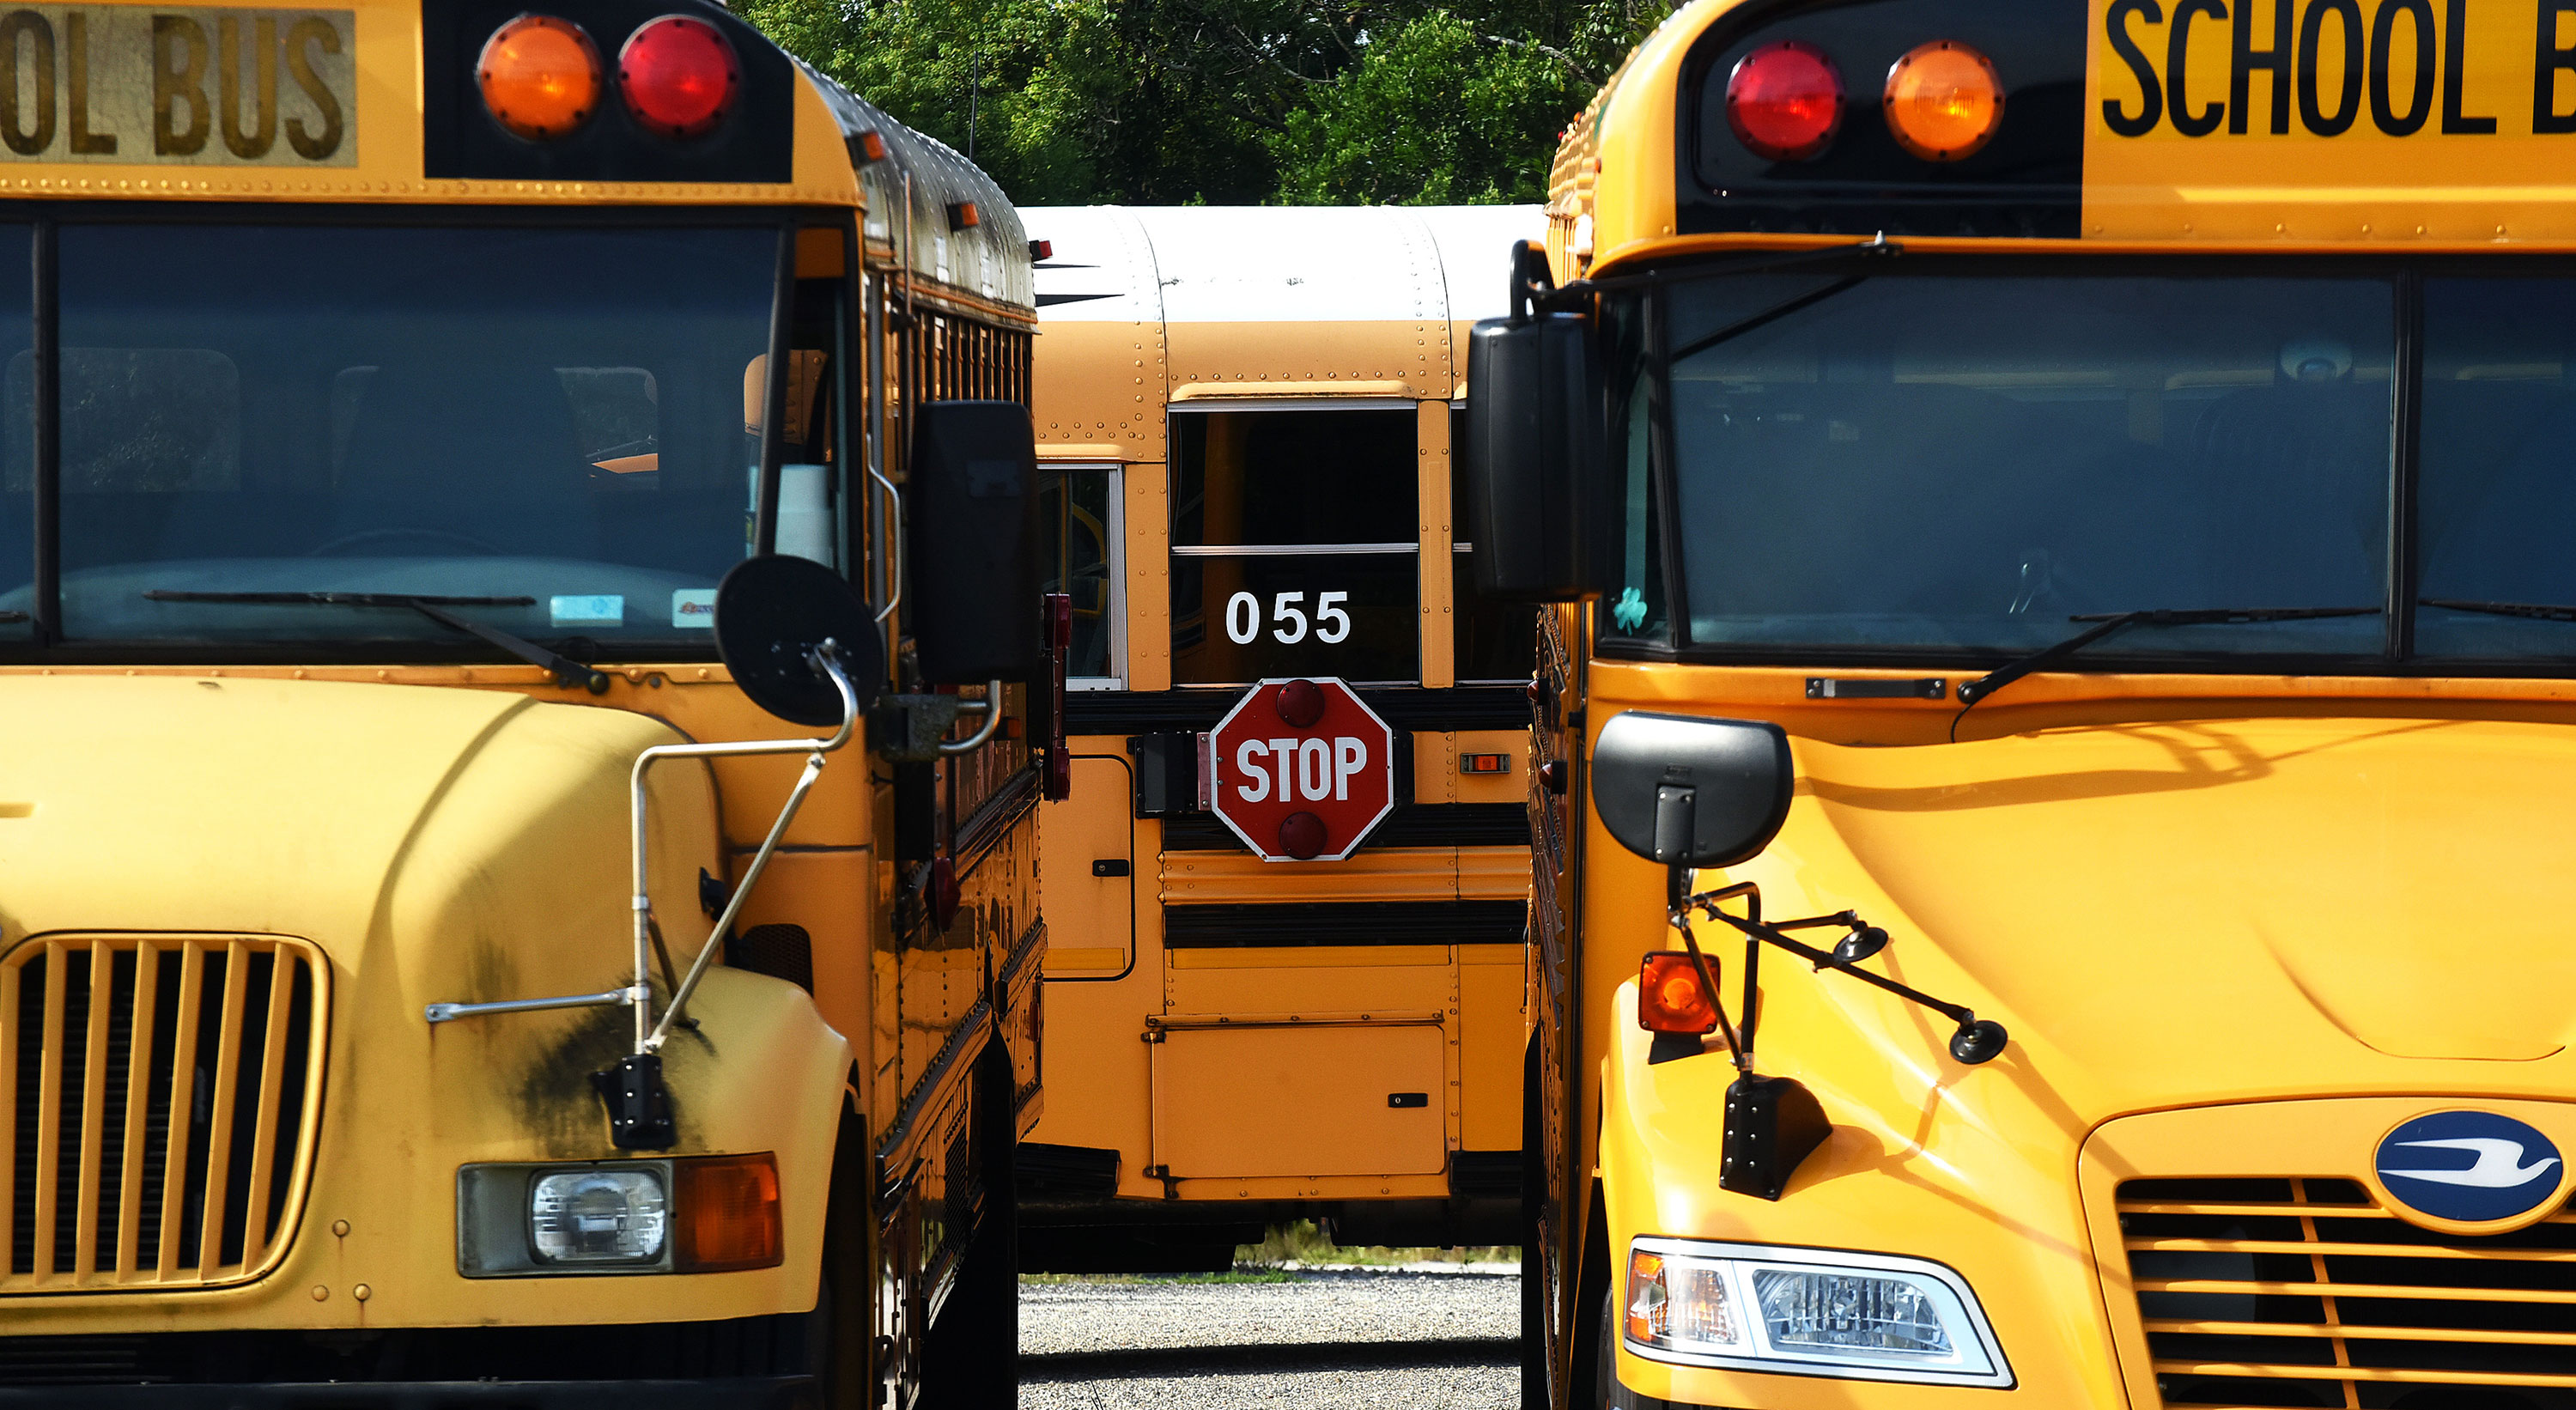 School buses are seen parked at a school in Winter Springs, Florida, in August 2020.